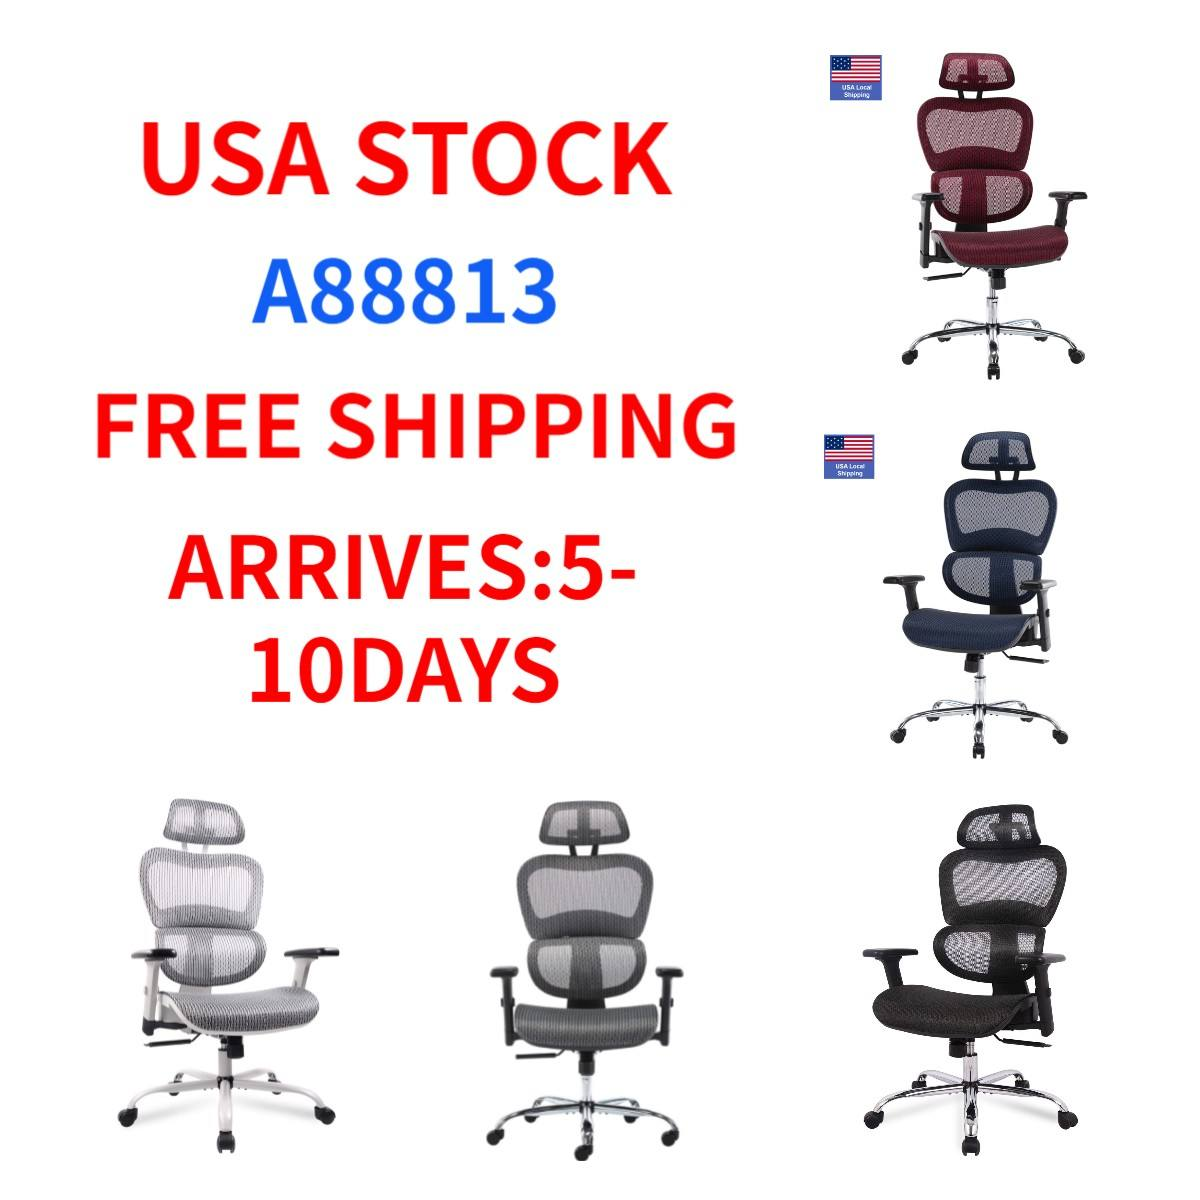 Ergonomic High-Back Full Mesh Office Chair Adjustable Executive Swivel Chair with lumbar support